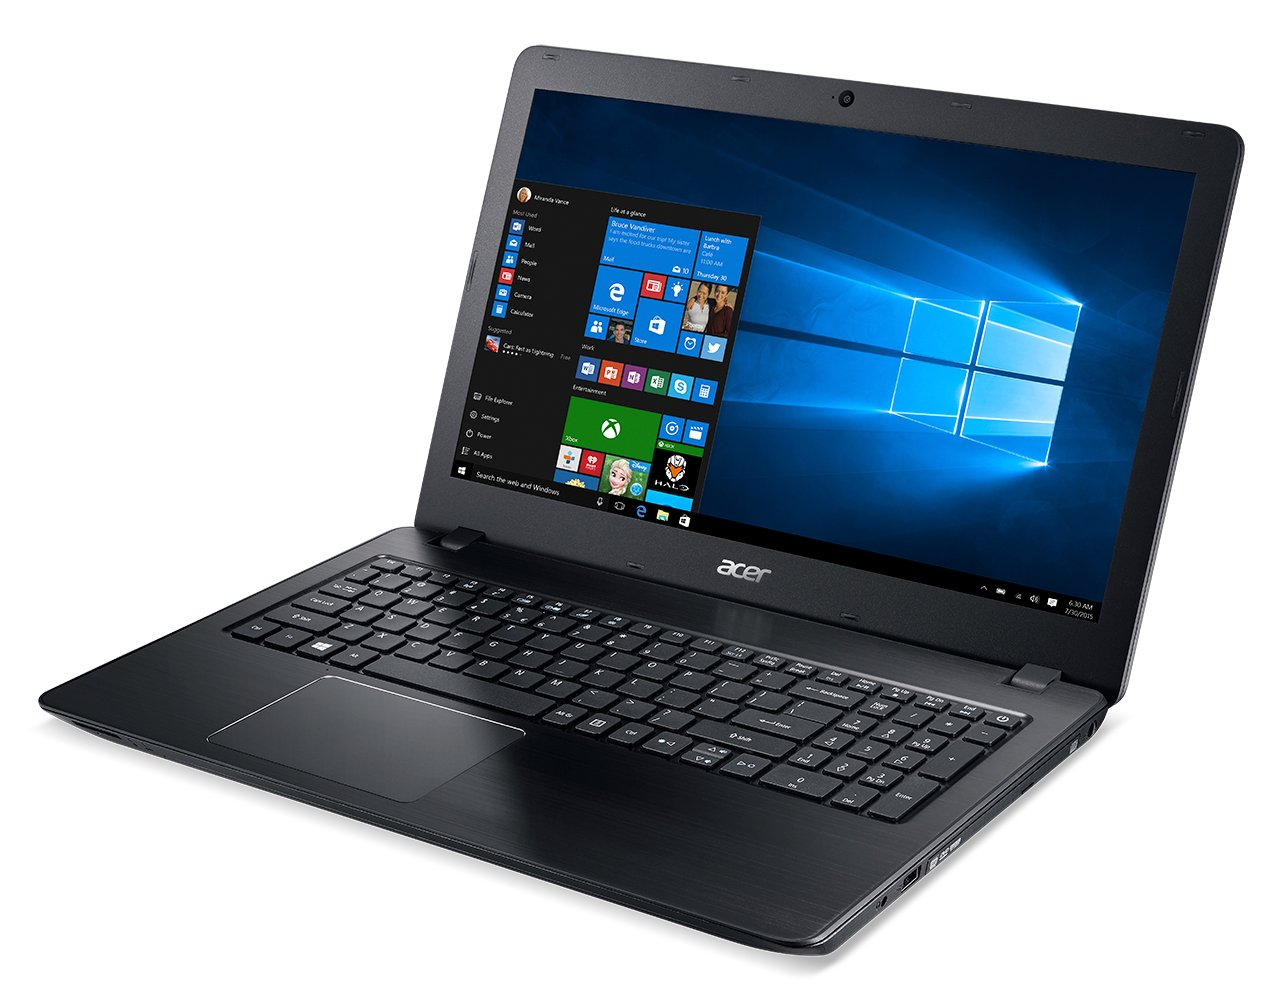 Acer Aspire V5-531G Intel USB 3.0 Treiber Windows XP